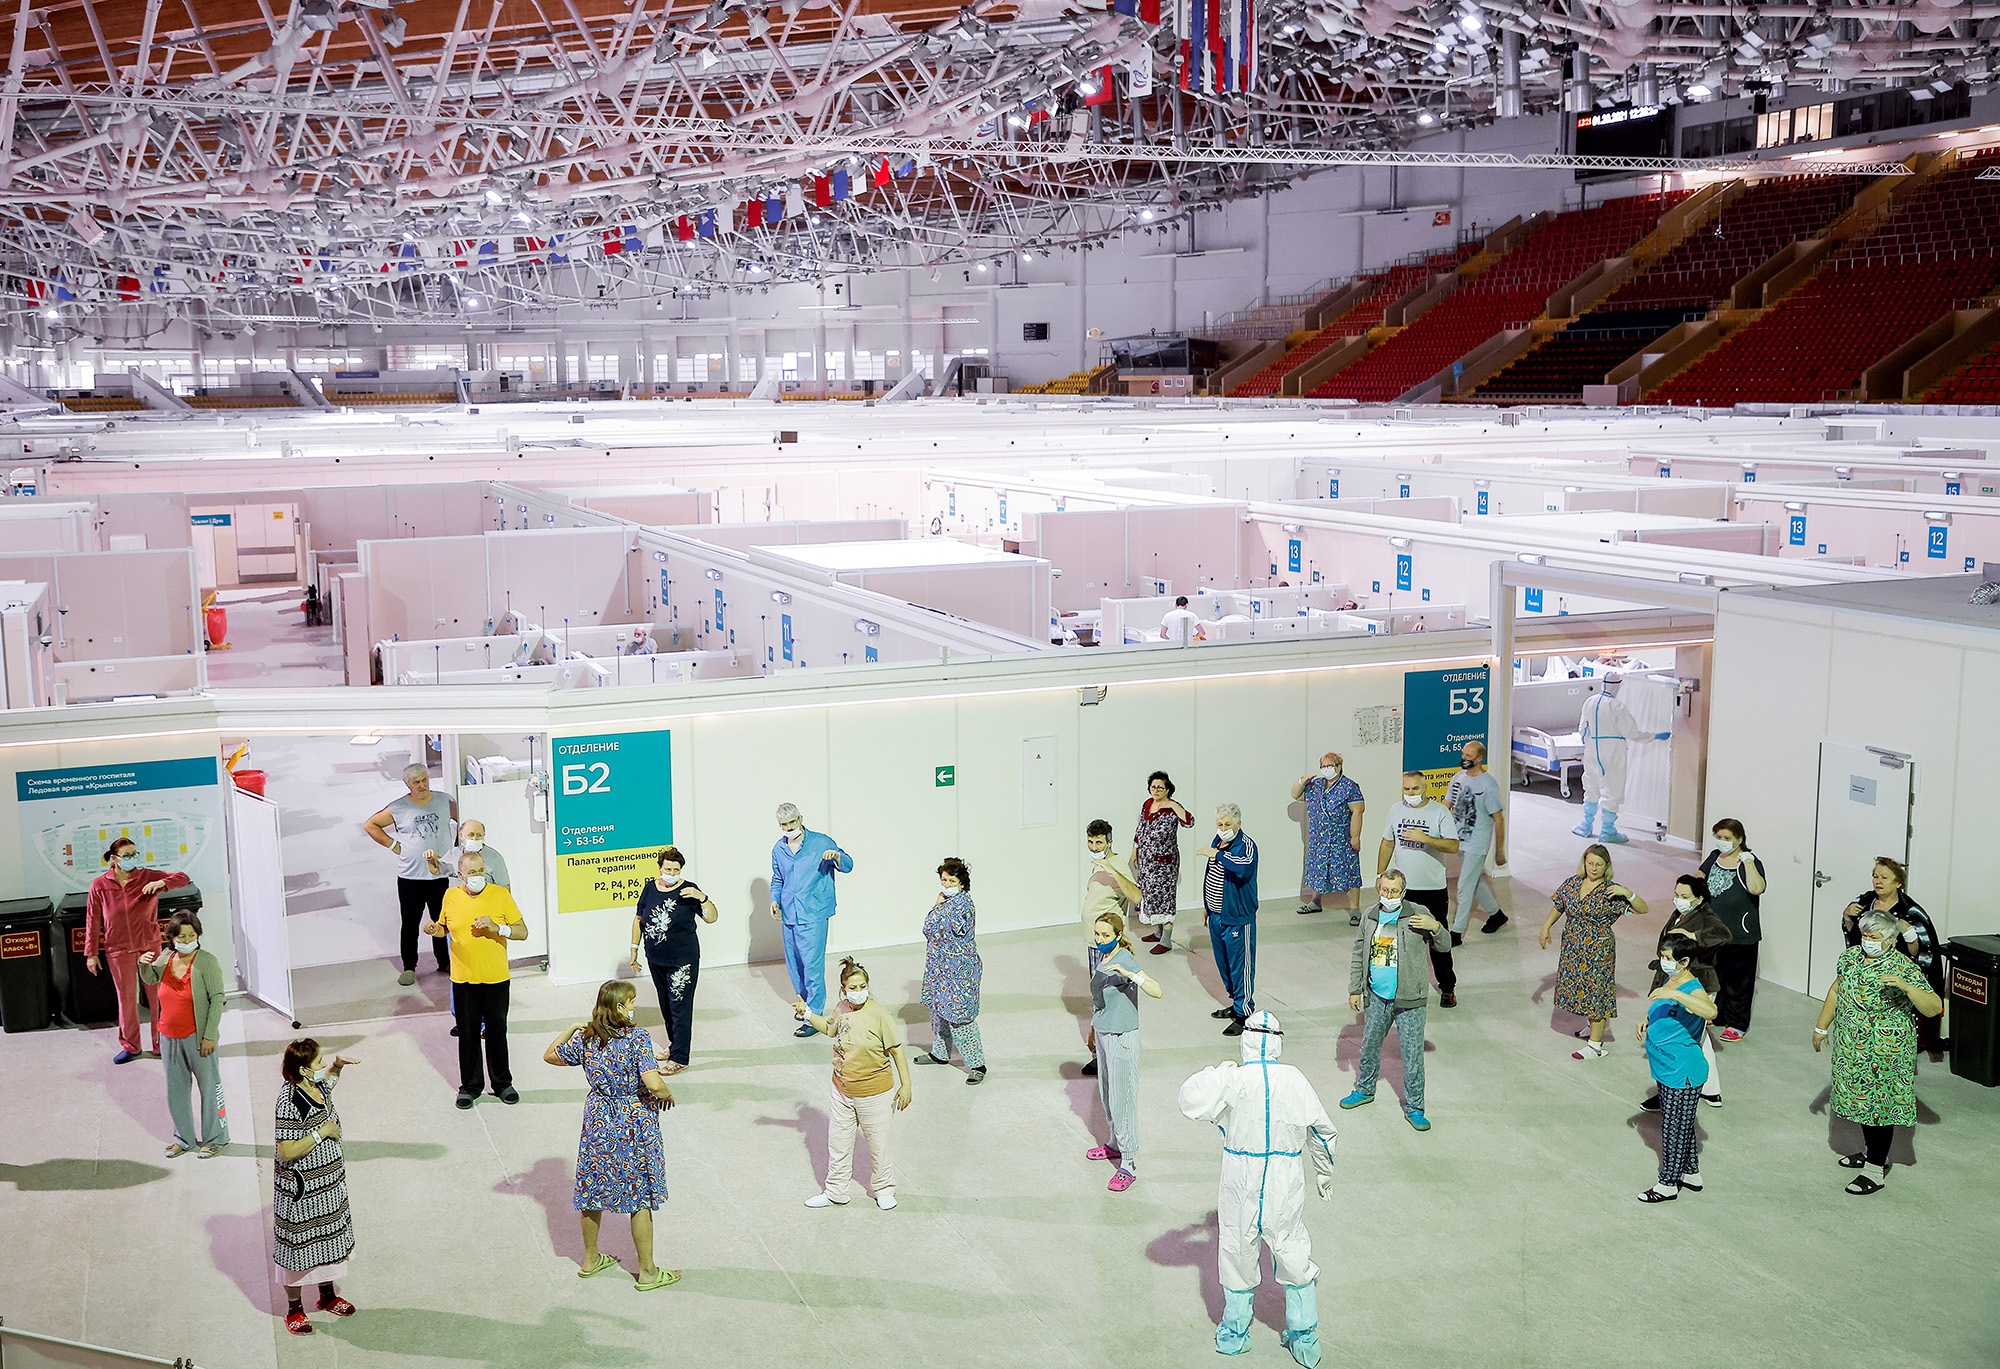 Patients follow instructions while practicing Tai Chi at the Krylatskoye Ice Palace, which was converted into a temporary hospital for people suffering from the coronavirus disease (COVID-19), in Moscow, Russia, January 20, 2021. Picture taken January 20, 2021. REUTERS/Maxim Shemetov